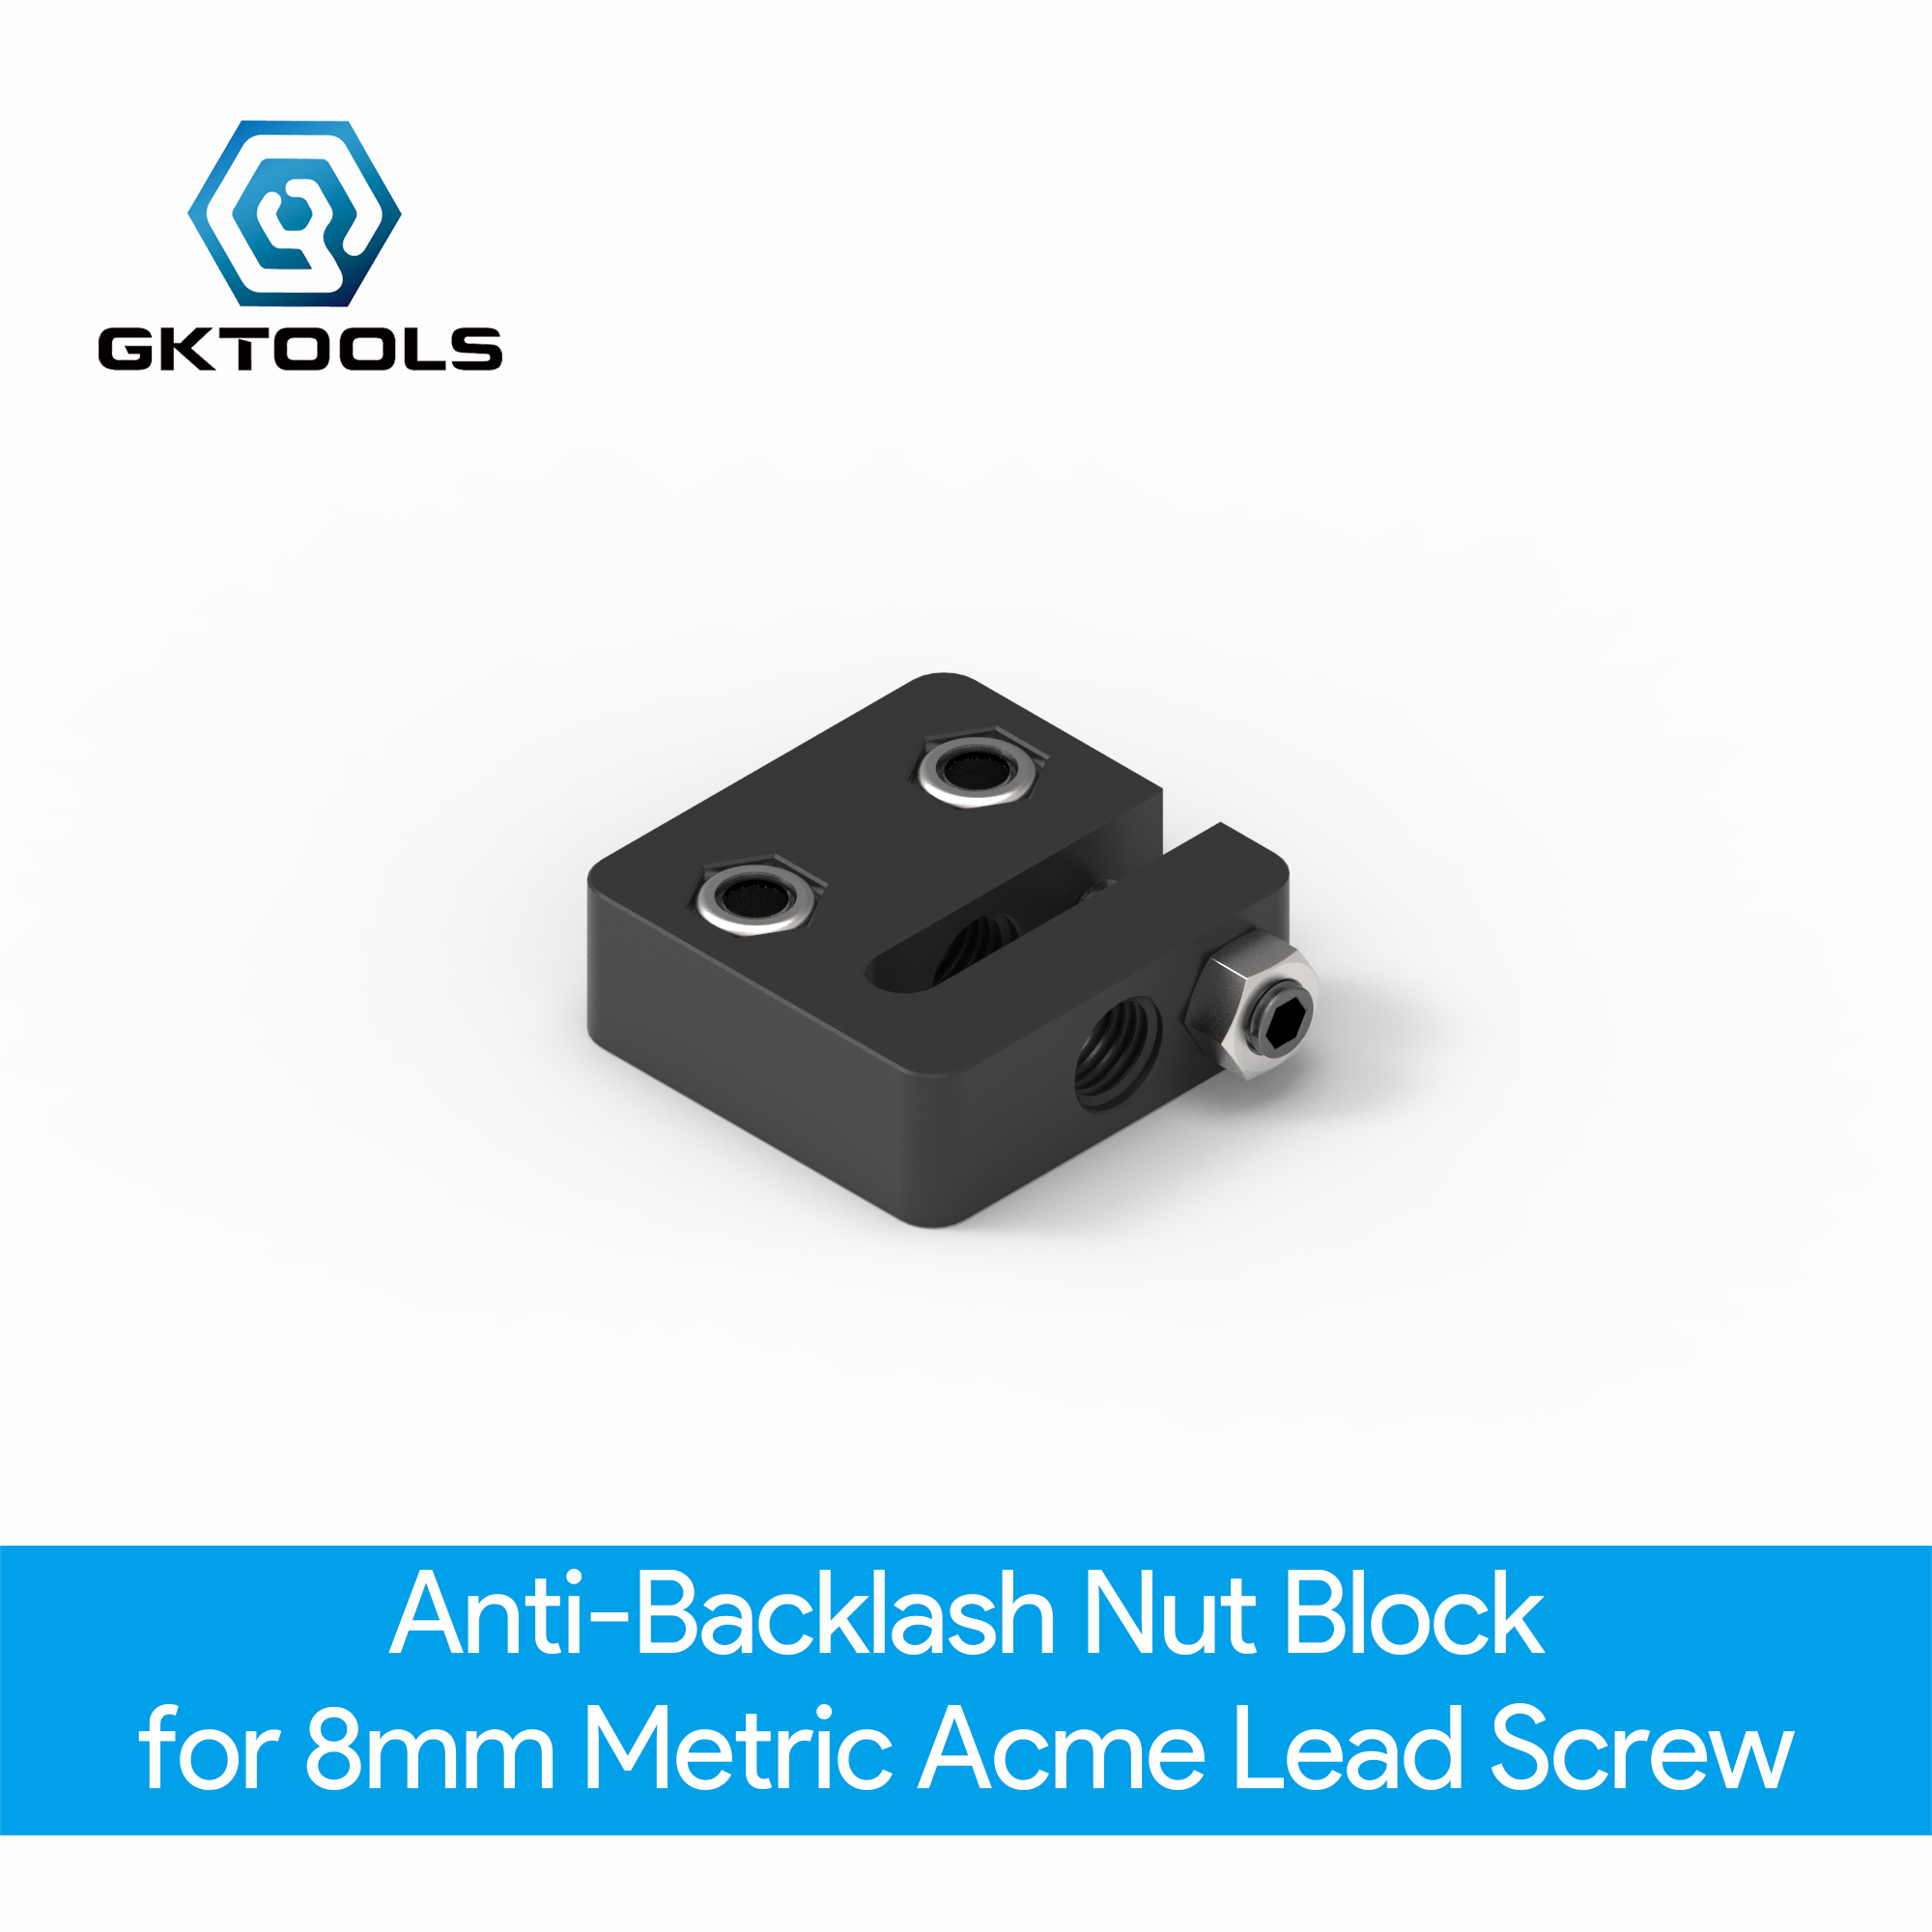 OpenBuilds Anti-Backlash Nut Block For 8mm Metric Acme Lead Screw